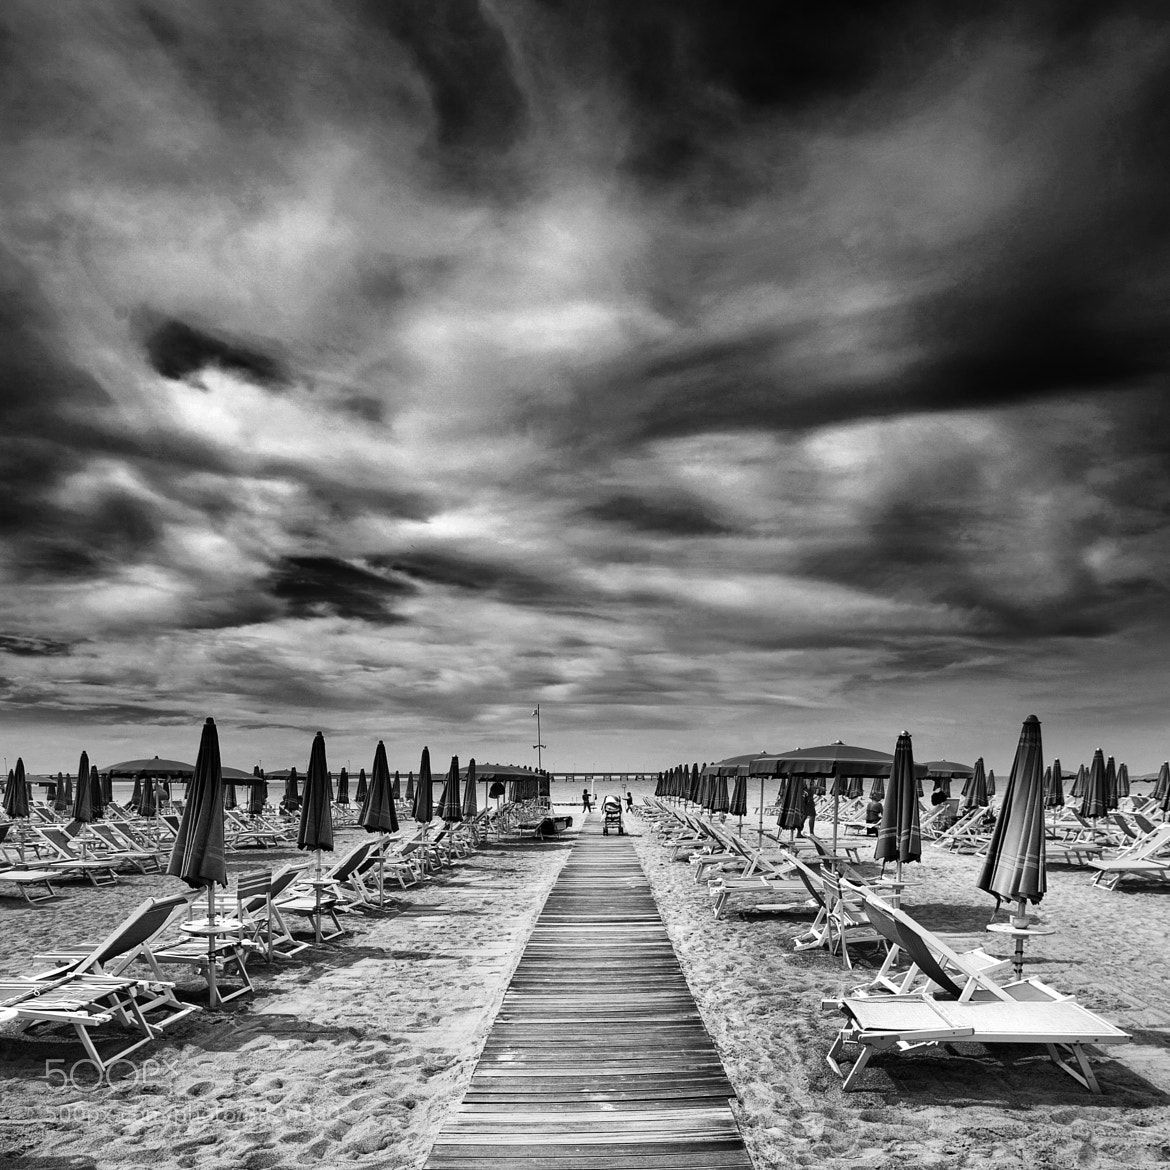 Photograph end of summer by Simone Lenzi on 500px